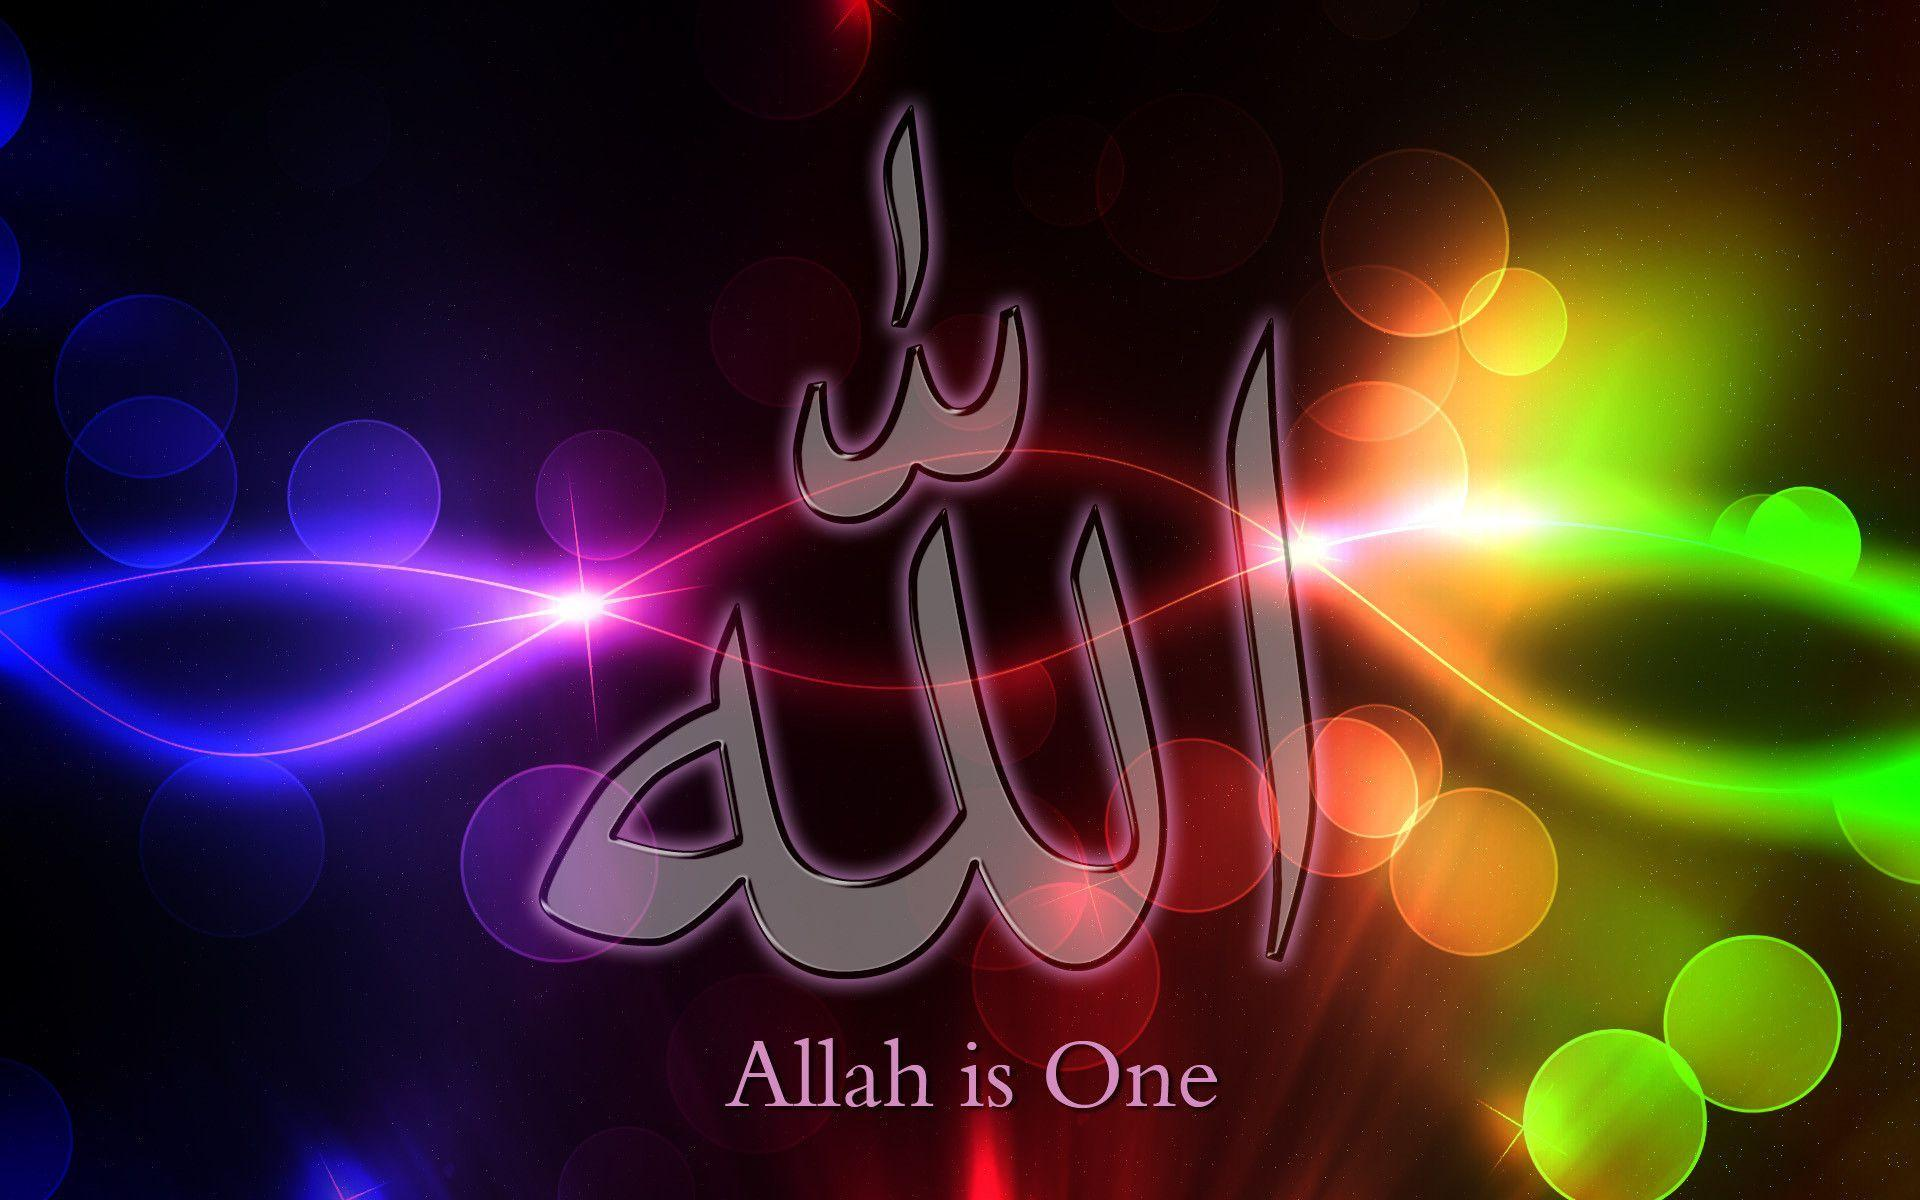 Allah Wallpapers - Full HD wallpaper search